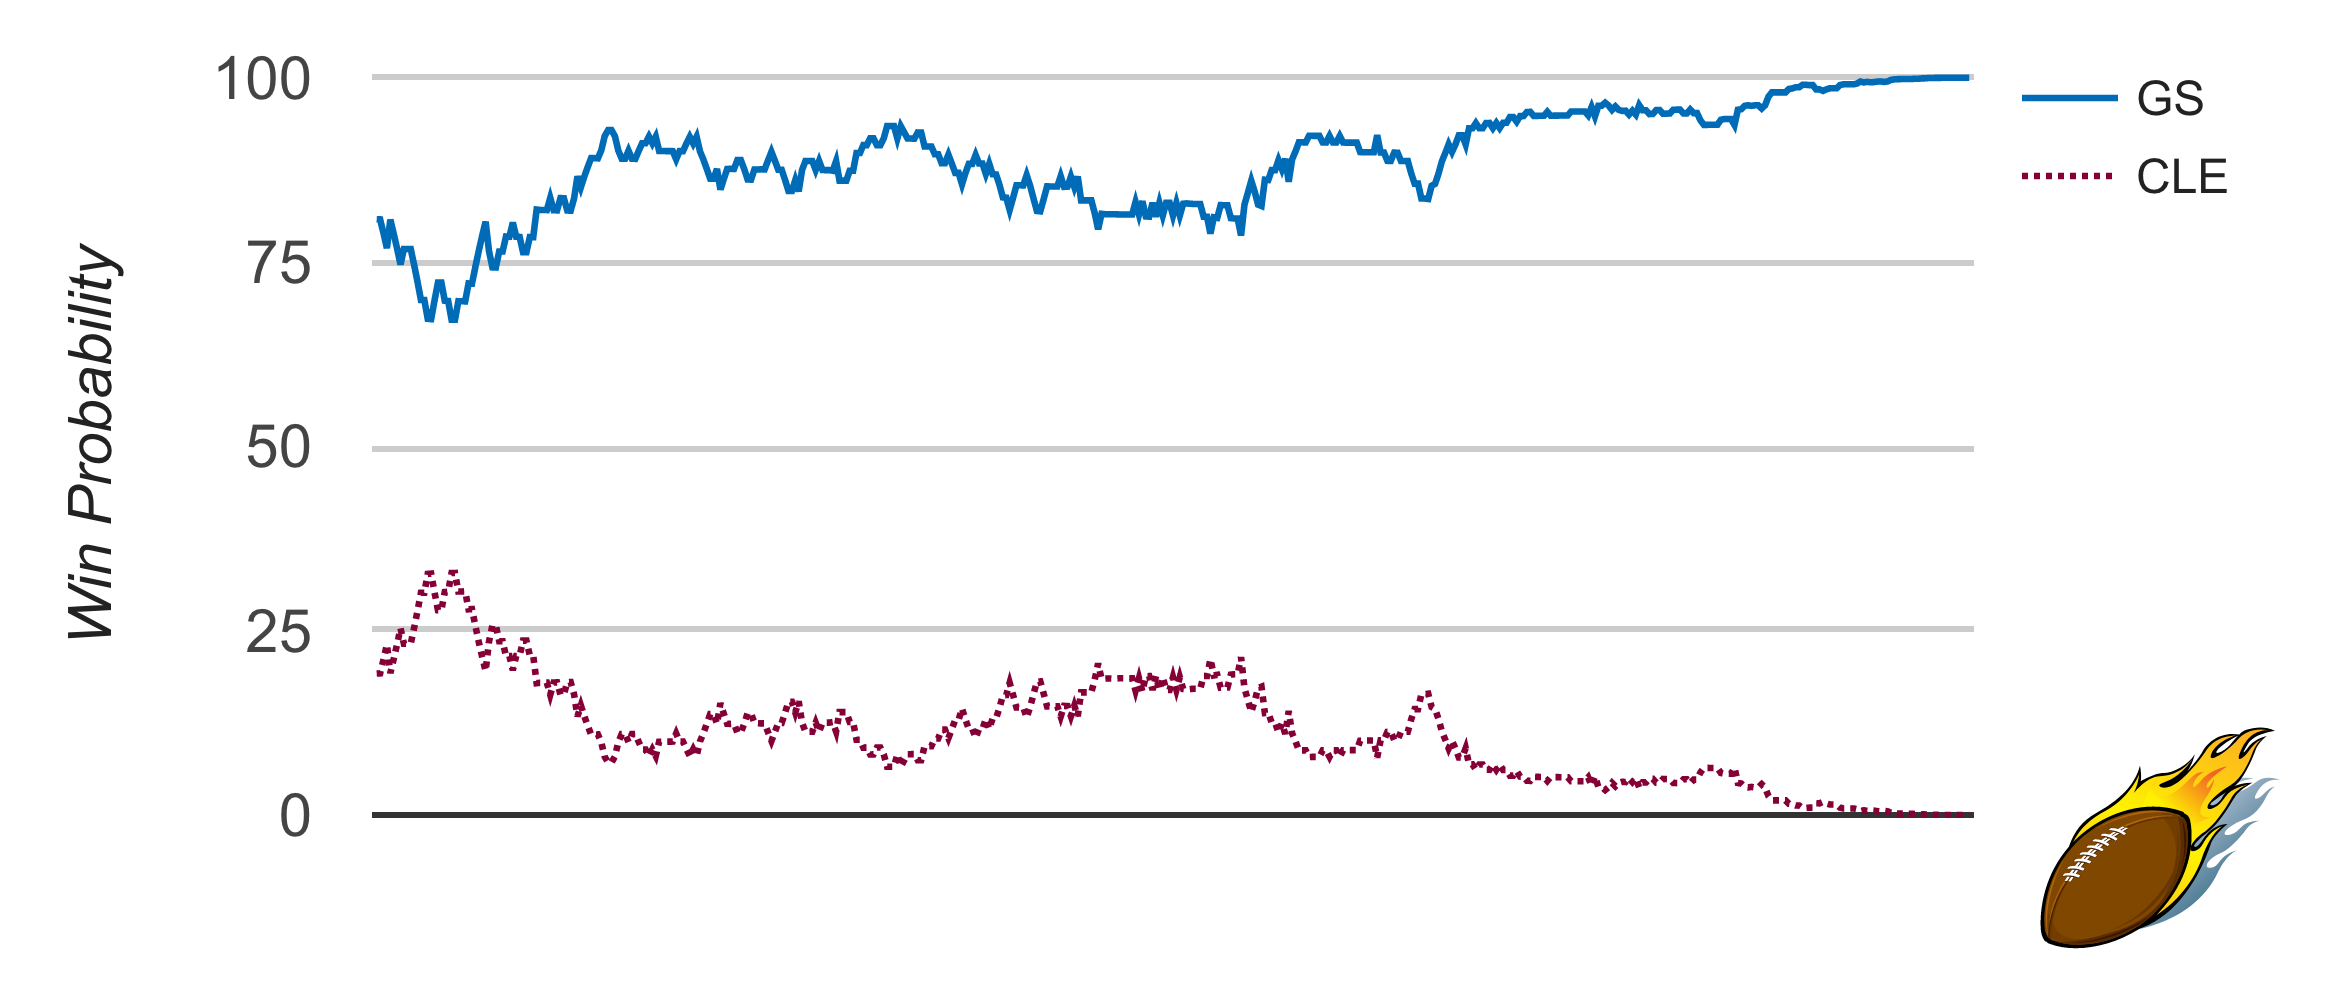 Warriors-Cavaliers WP Graph Game 2